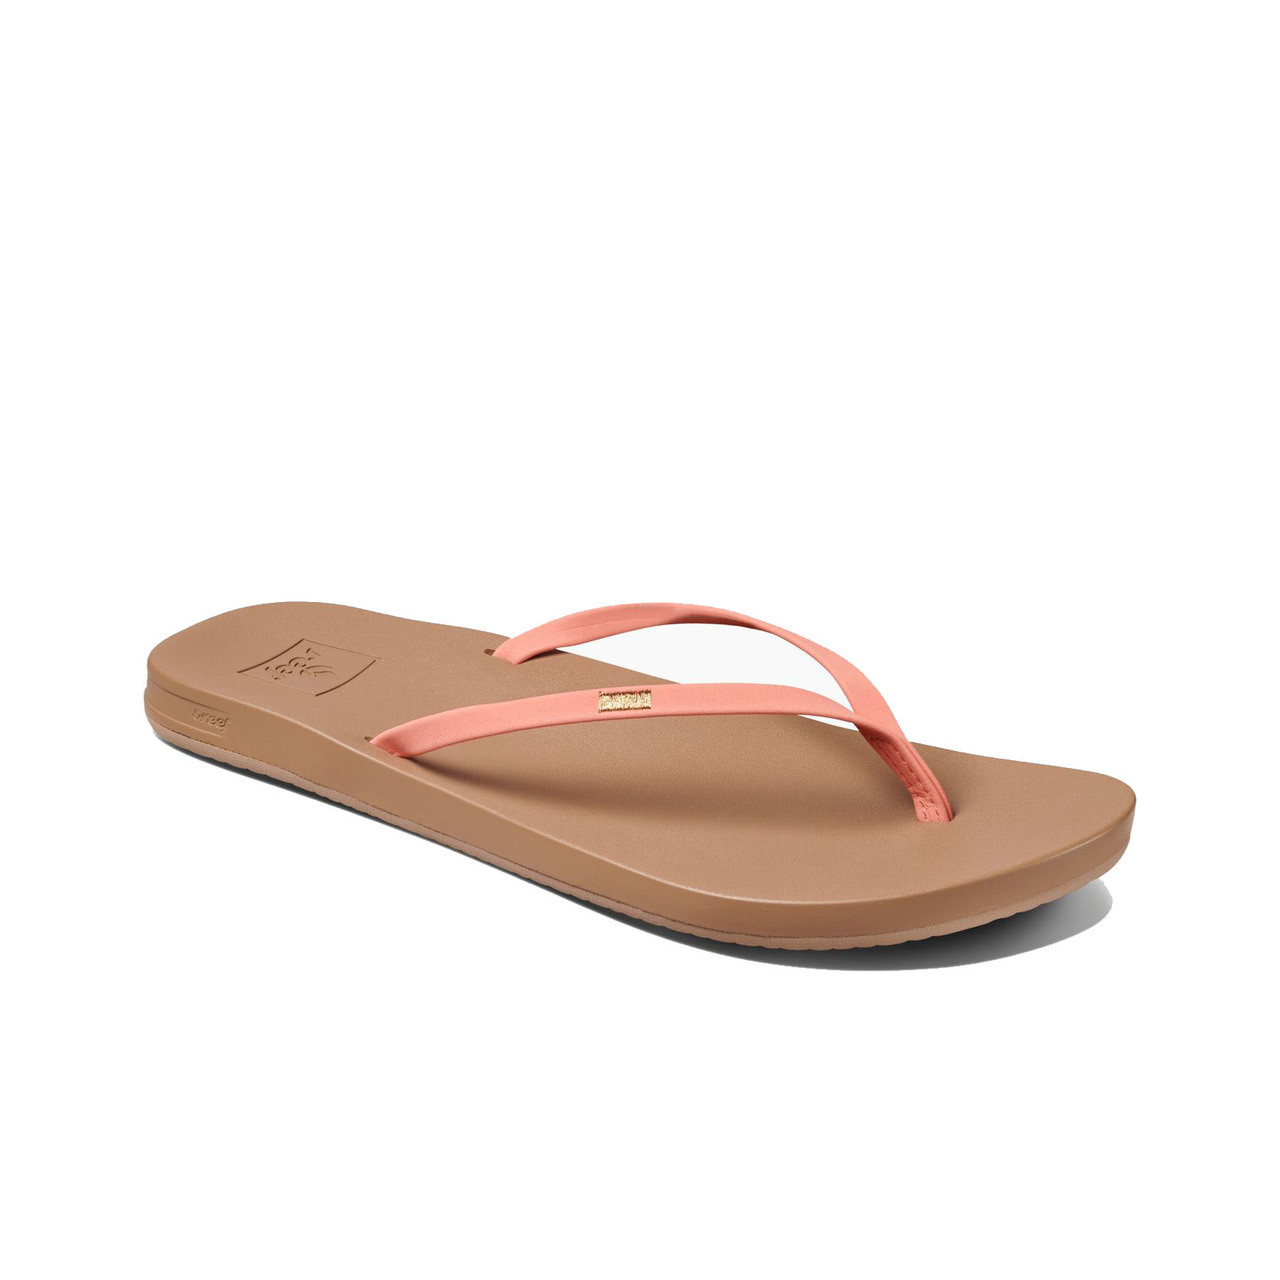 ecf2248d9829 Reef Women s Flip Flops - Cushion Bounce Slim - Coral - Surf and Dirt